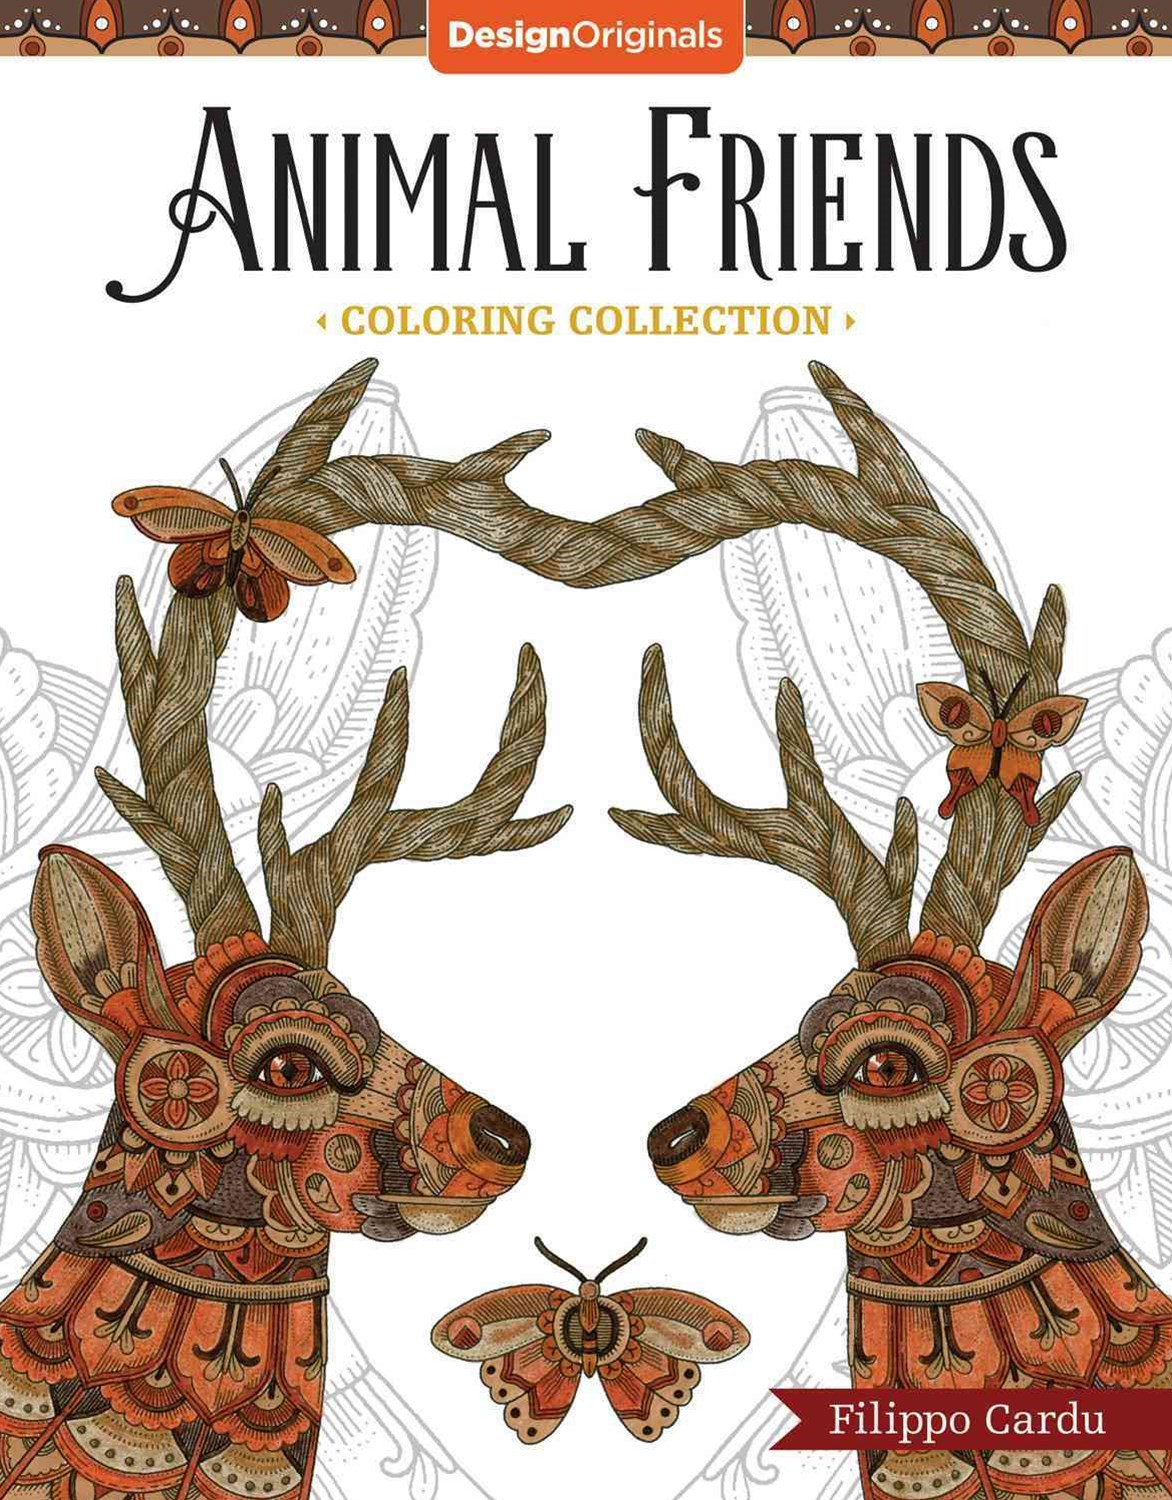 Animal Friends (Filippo Cardu Coloring Collection)